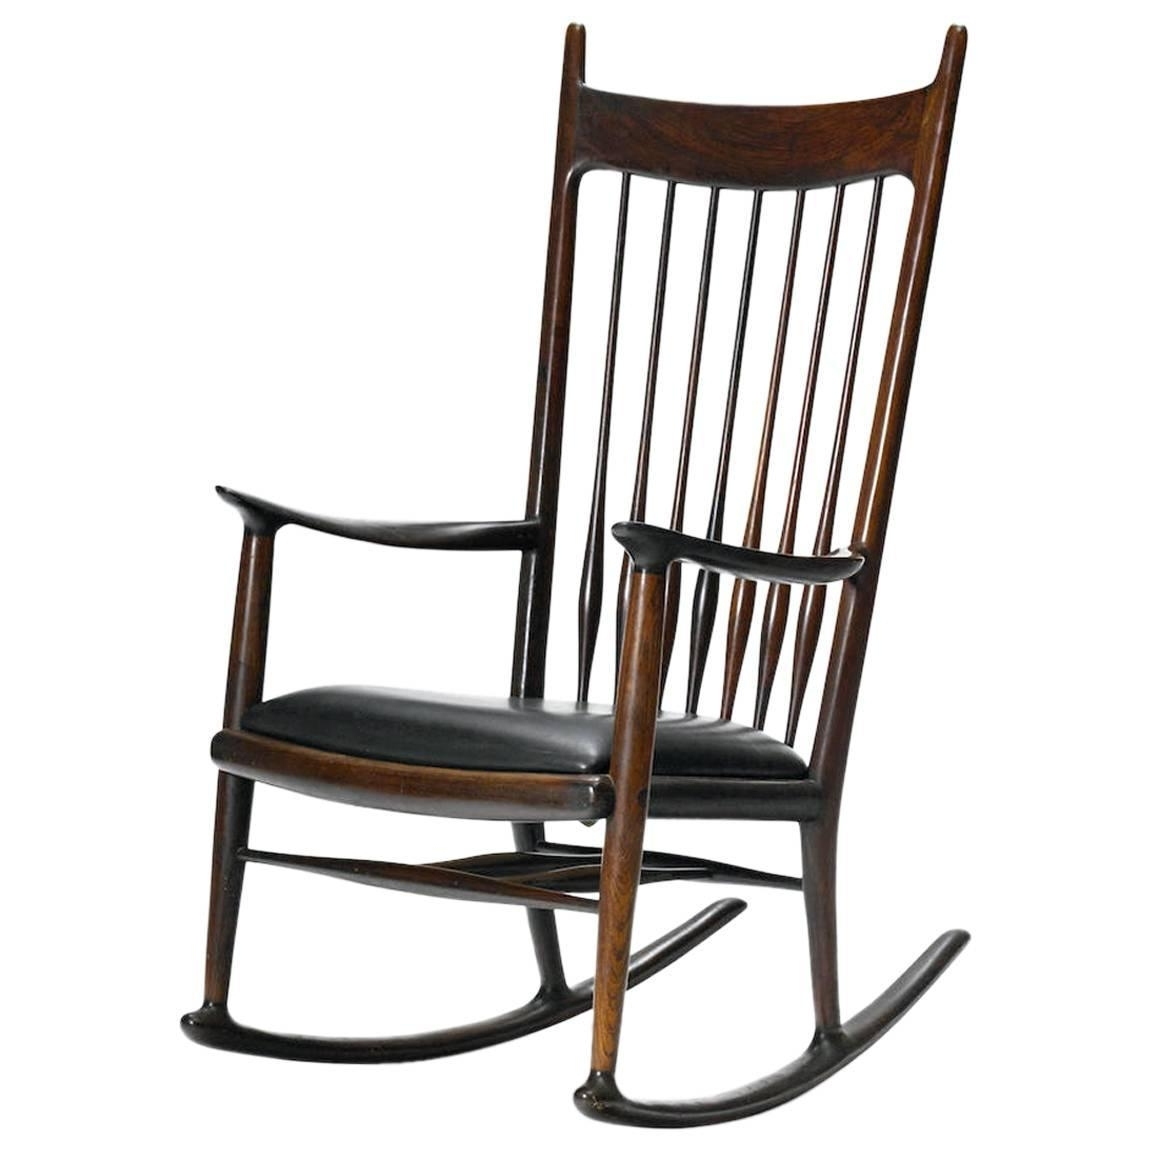 Rare Early Rosewood Rocking Chairsam Maloof For Sale At 1Stdibs Regarding Most Up To Date Rocking Chairs At Sam's Club (View 2 of 15)